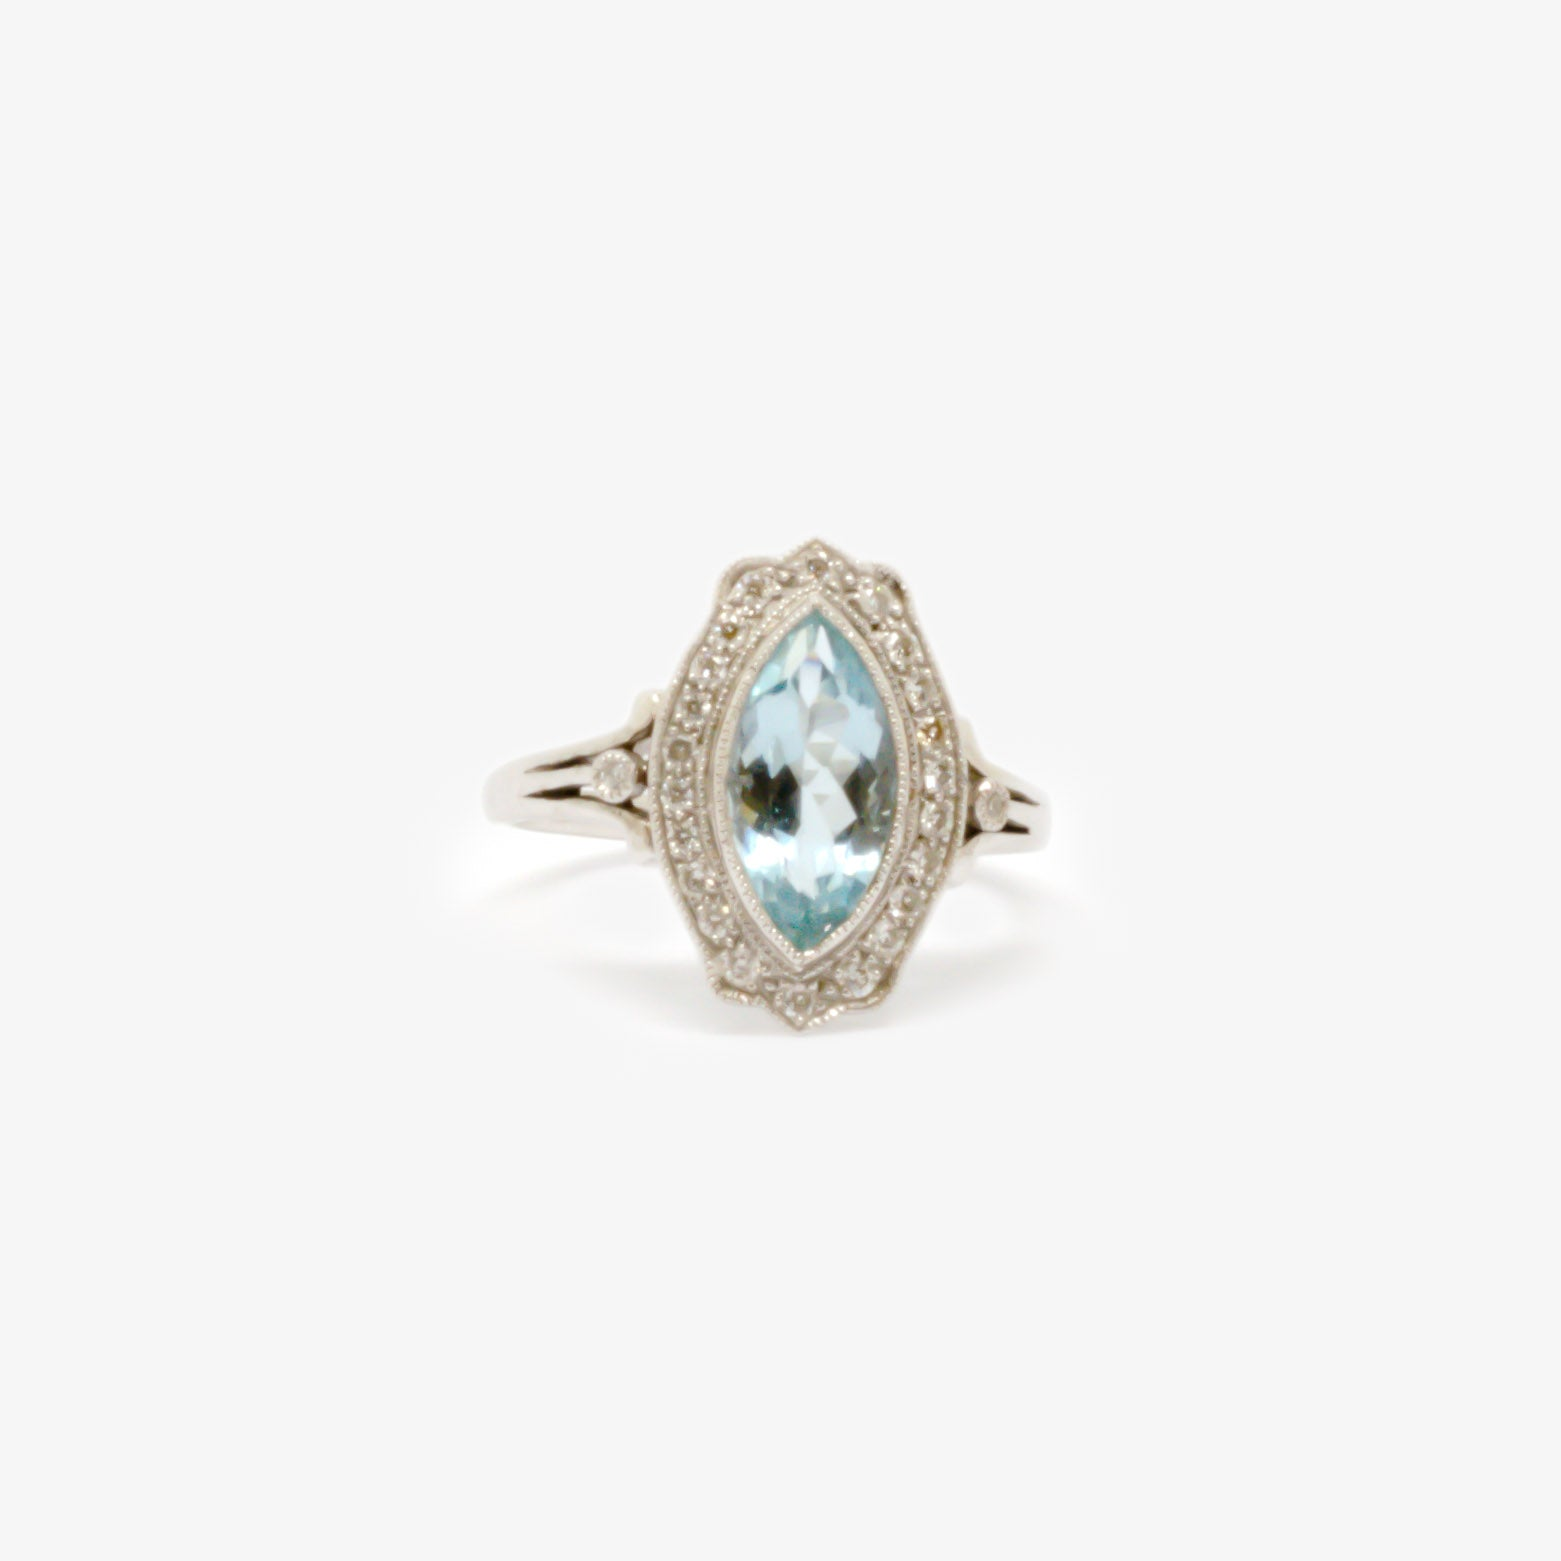 Ring in white gold with an aquamarine in the centre surrounded by diamonds and two diamonds on the either side.